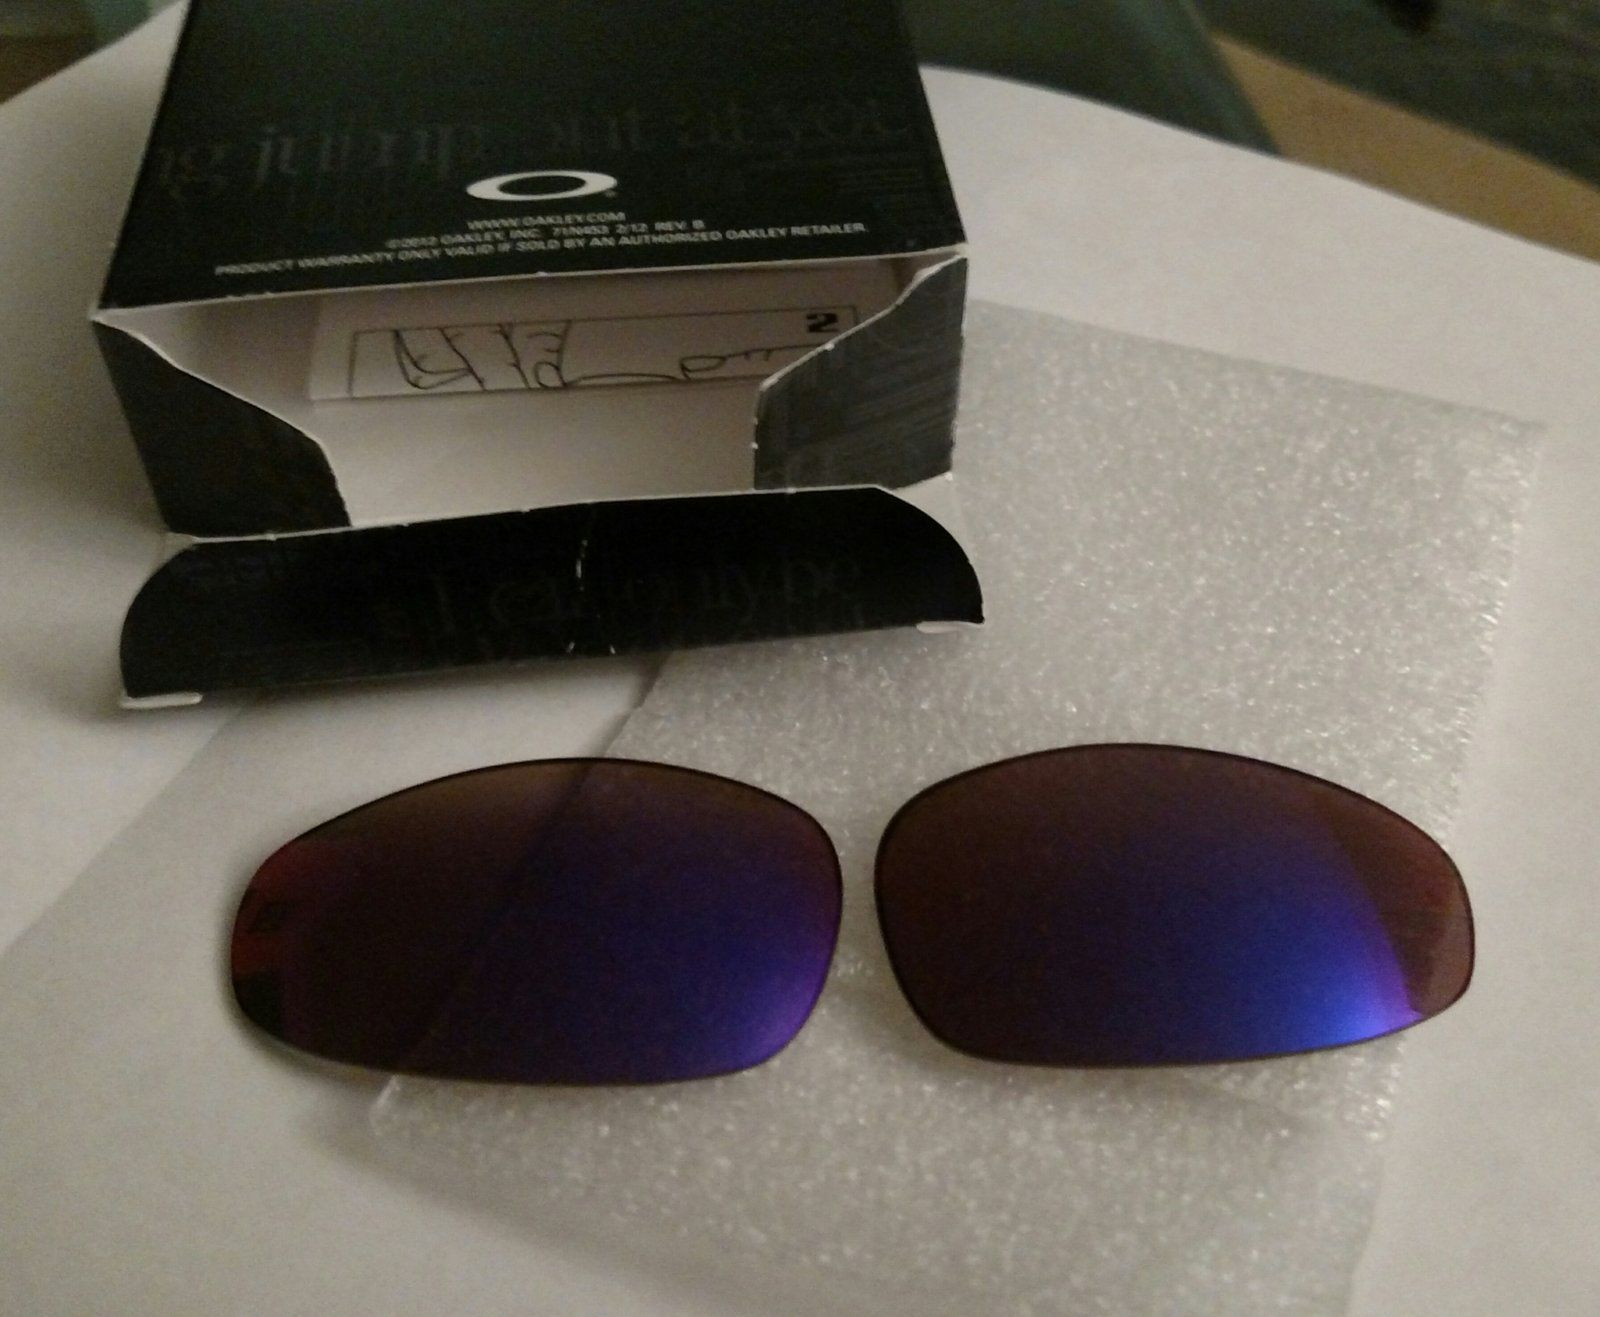 XX & JULIET CUSTOM CUT LENSES FOR X-METALS - IMG_20161116_182724.jpg